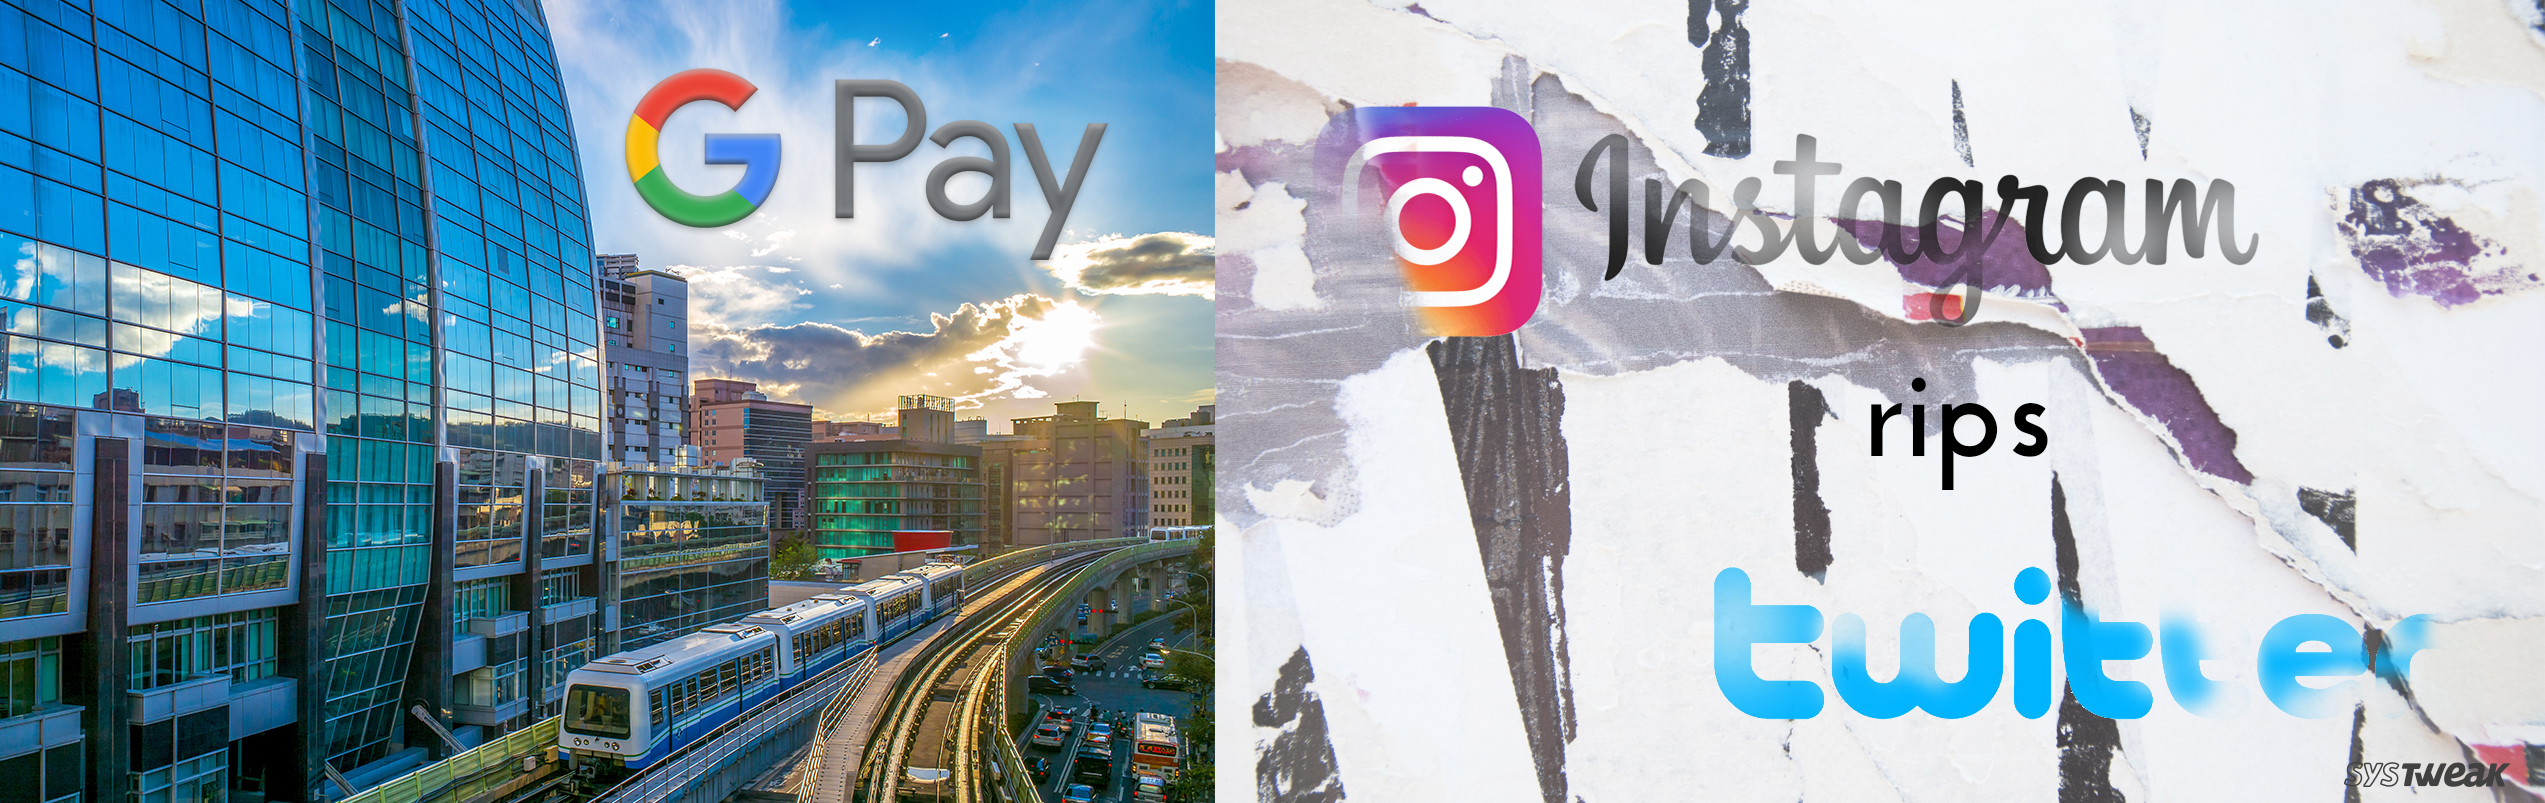 Newsletter: Vegas Uses Google Pay for Public Transport & 'Quote Tweet' Like Instagram Feed